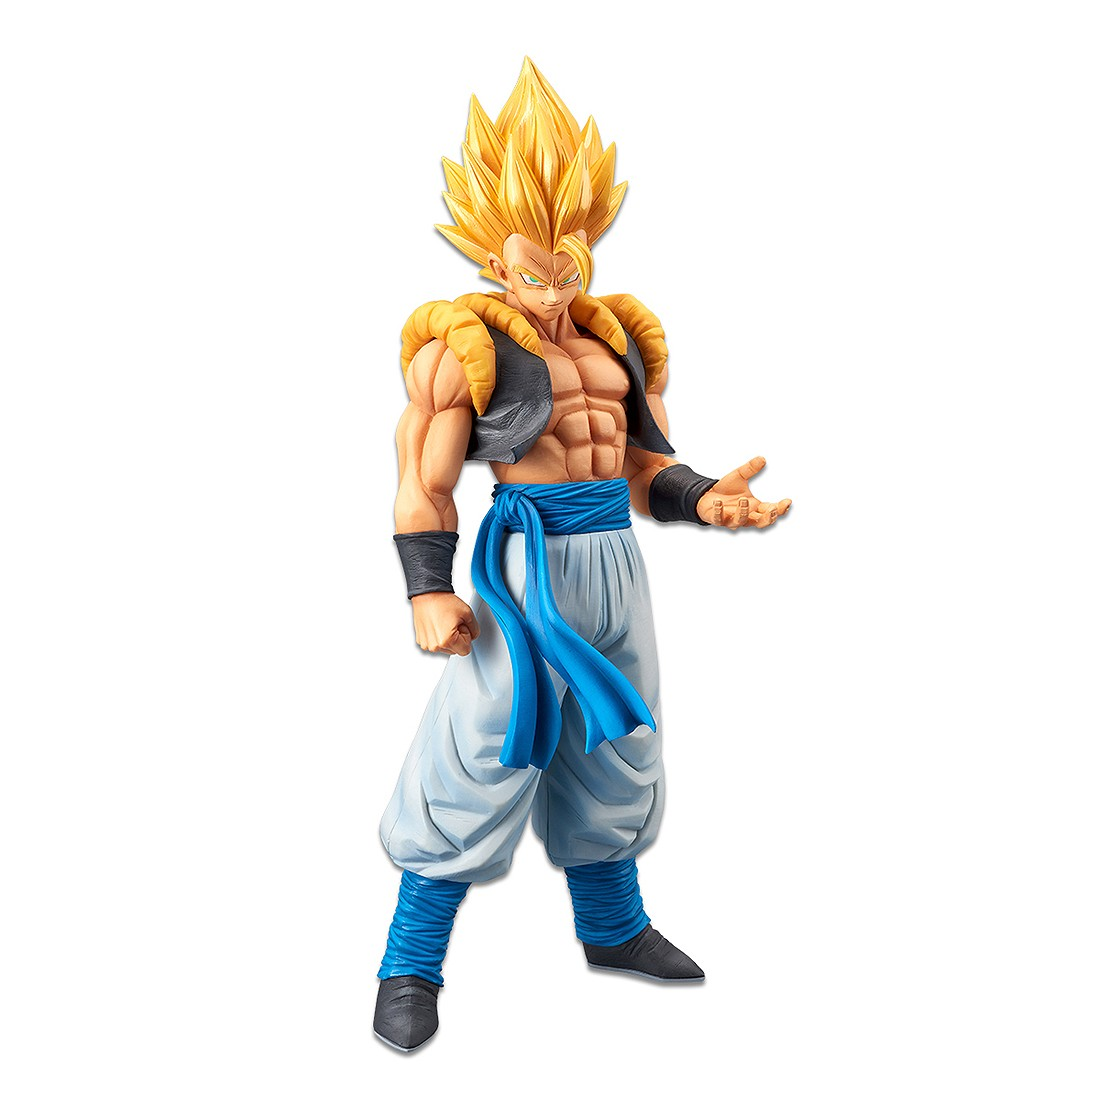 PREORDER - Banpresto Dragon Ball Super Grandista Nero Gogeta Figure (yellow)